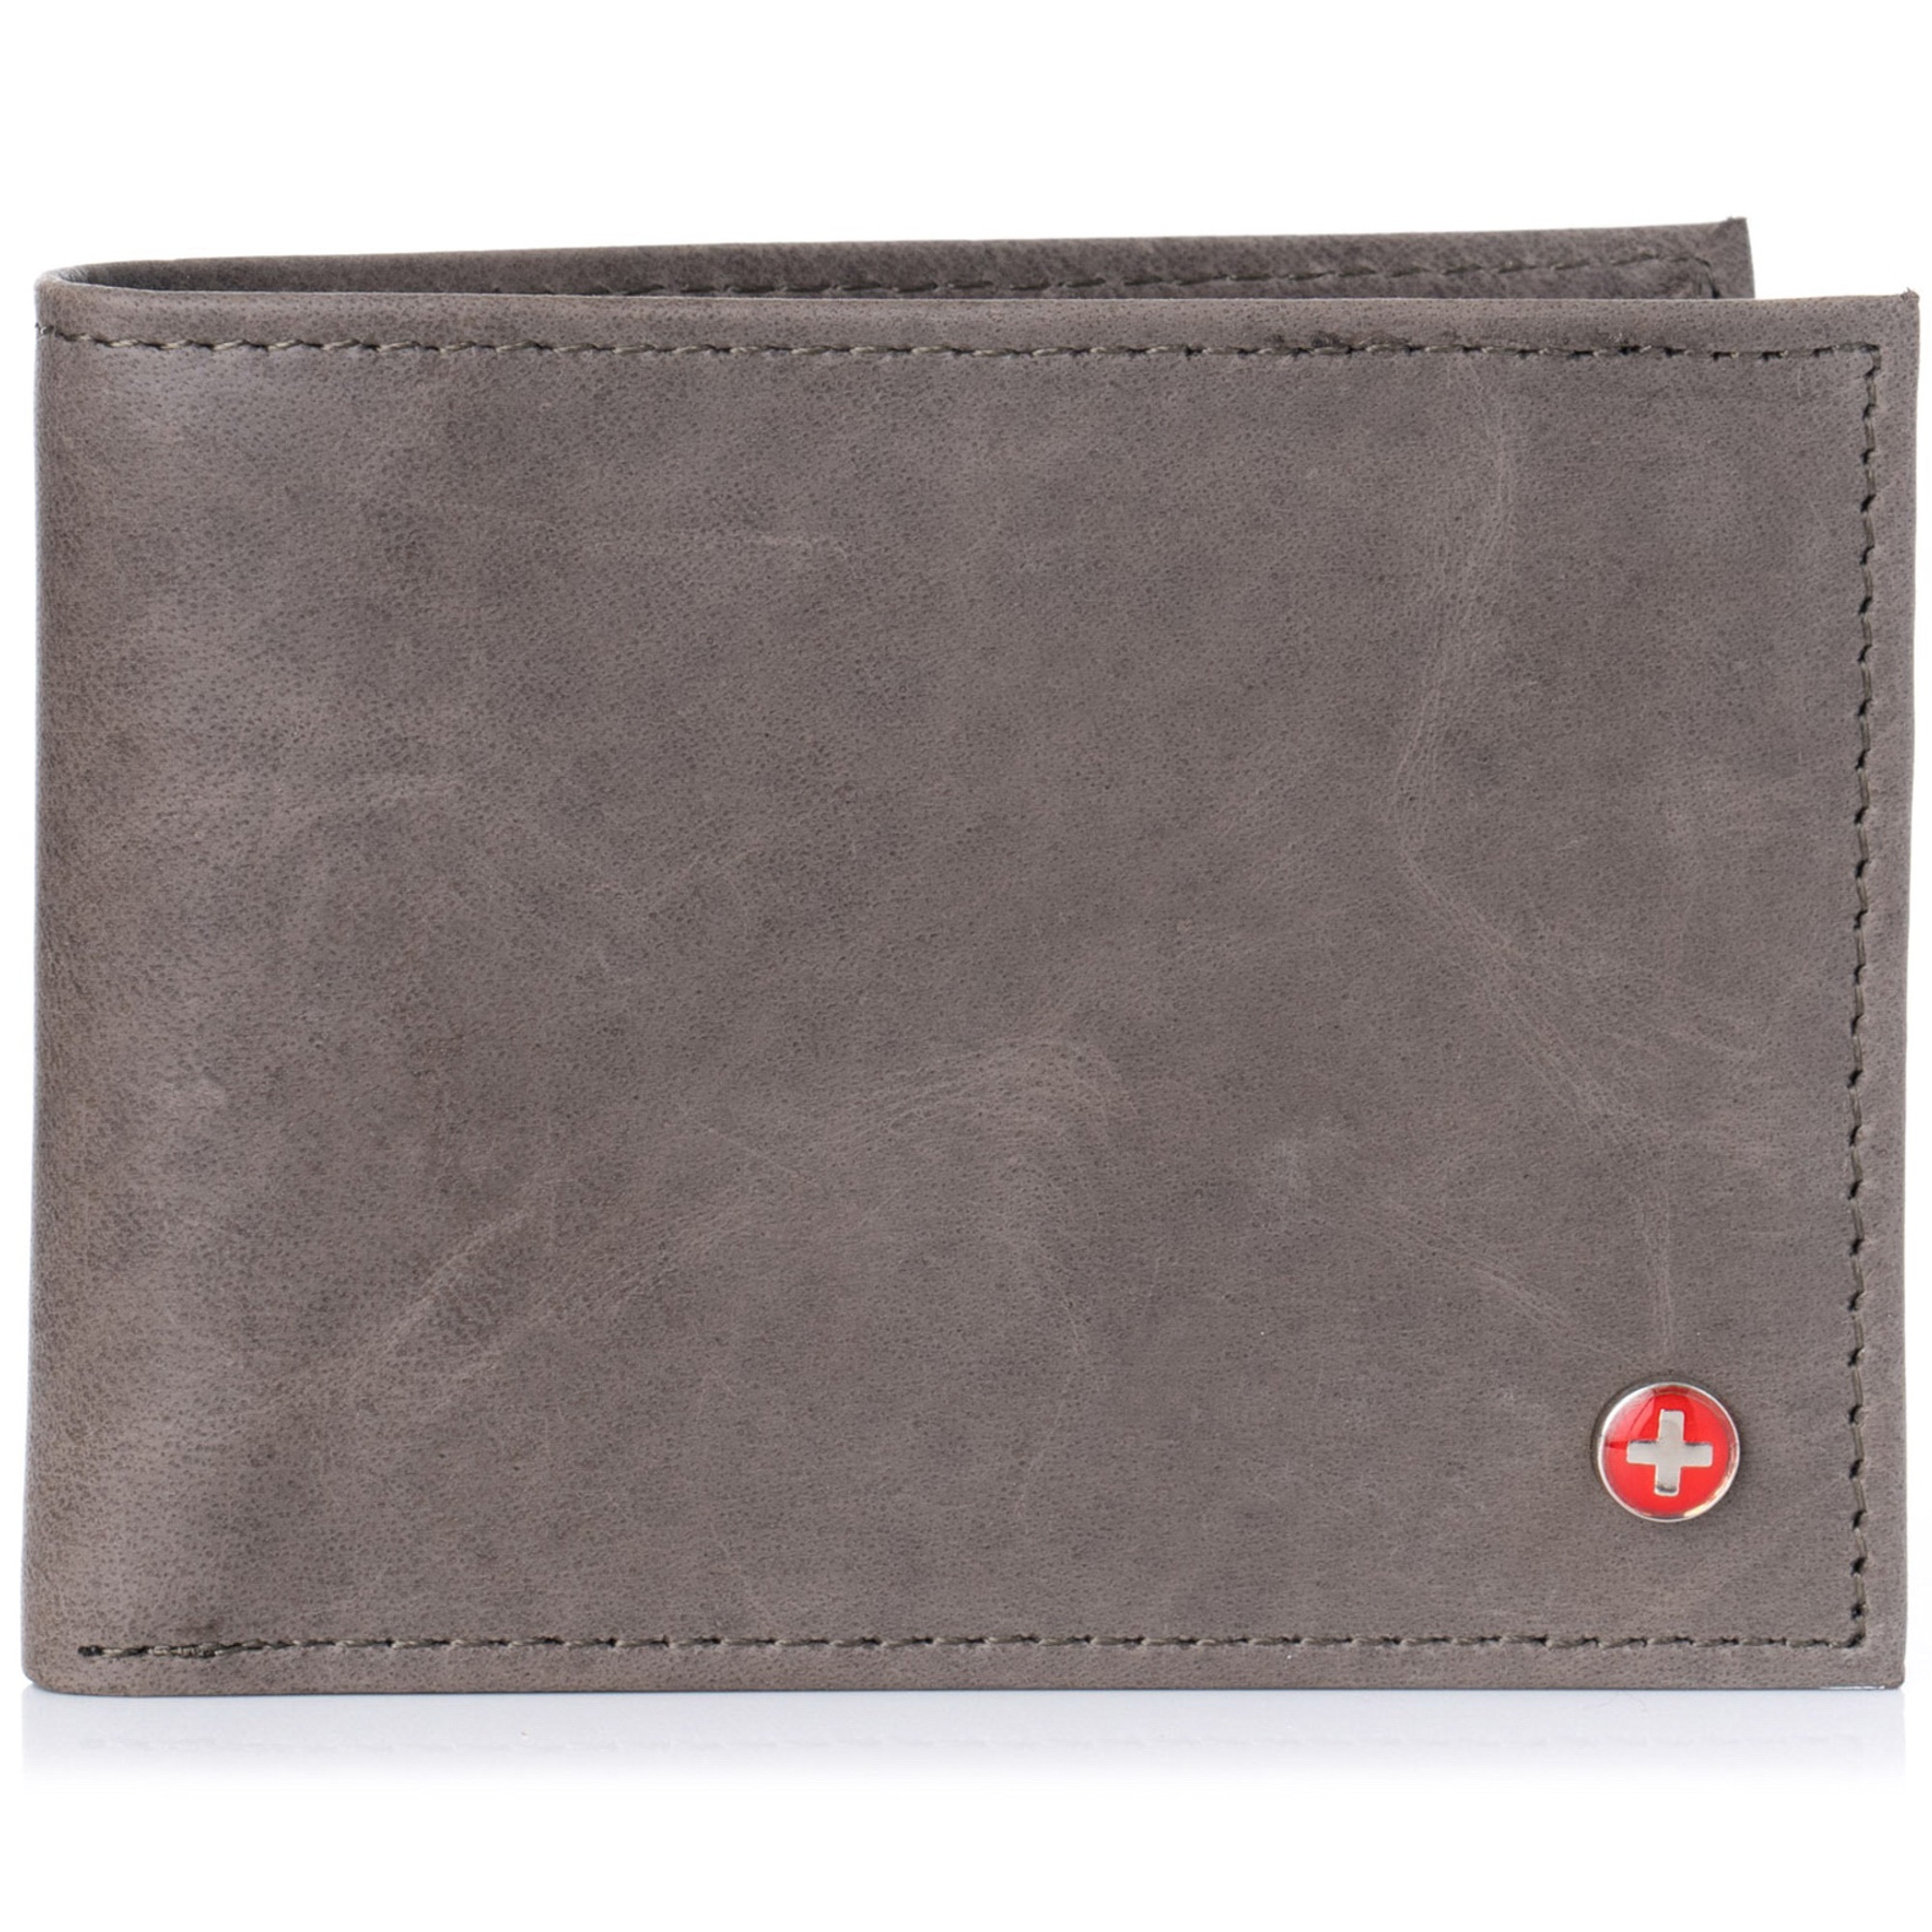 Alpine-Swiss-Mens-Wallet-Genuine-Leather-Removable-ID-Card-Case-Bifold-Passcase thumbnail 99